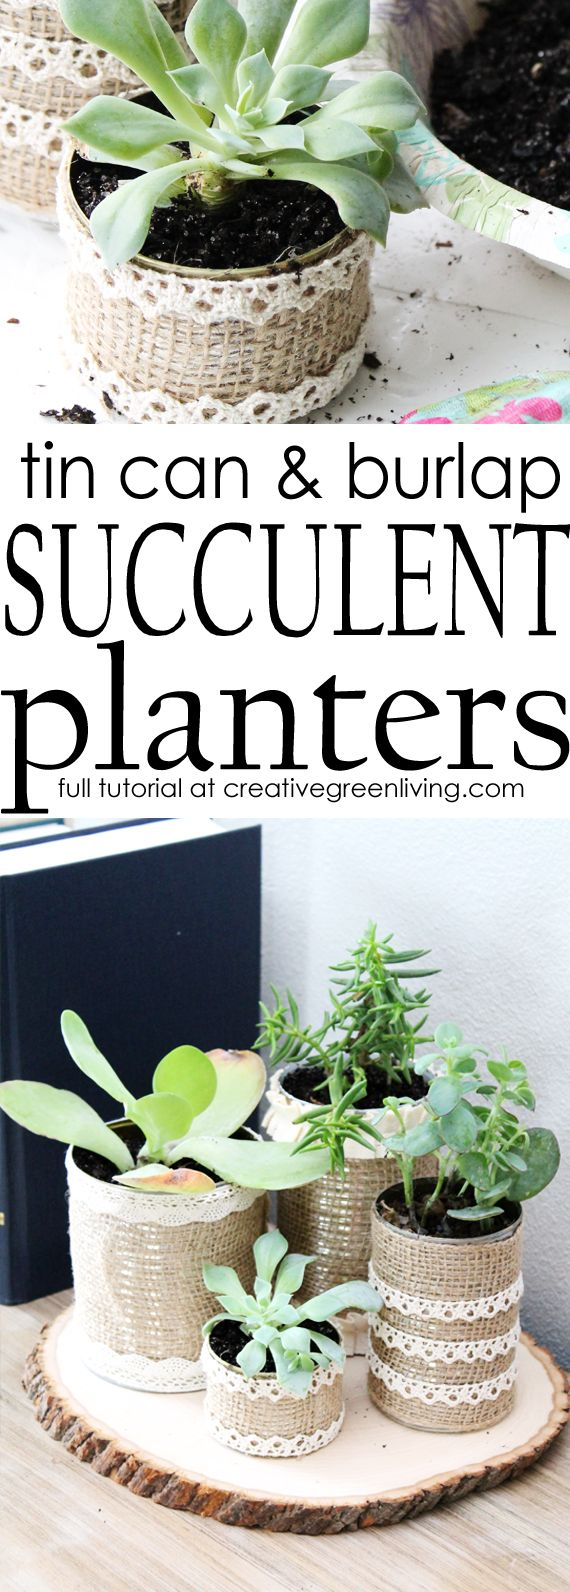 Make Recycled Succulent Planters | Wedding centerpieces, Burlap and ...